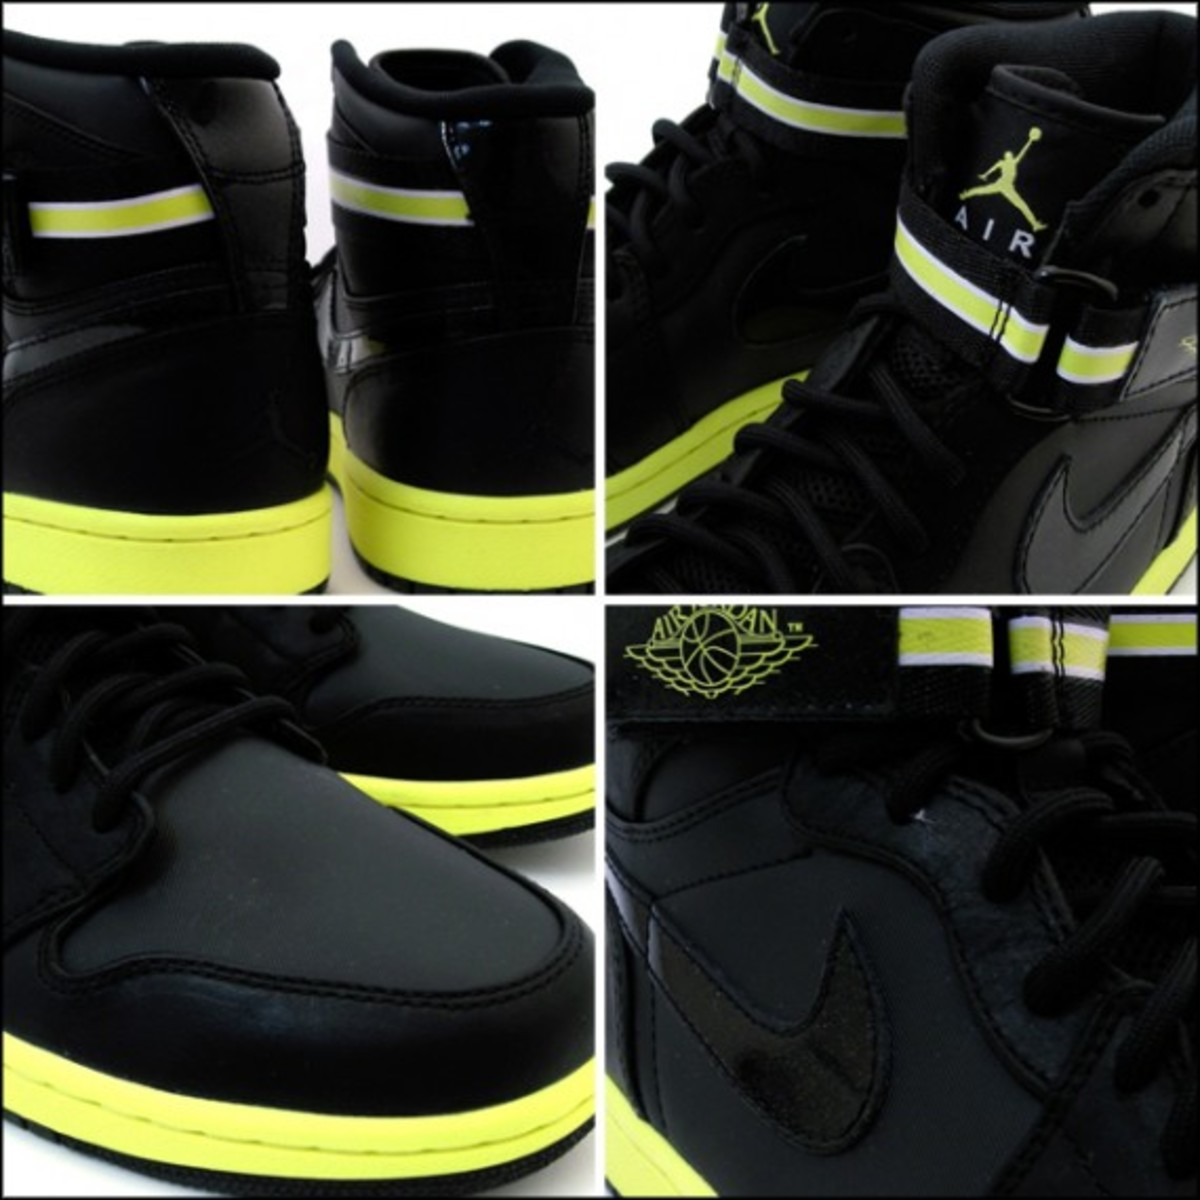 air-jordan-i-retro-high-strap-black-voltage-yellow-3